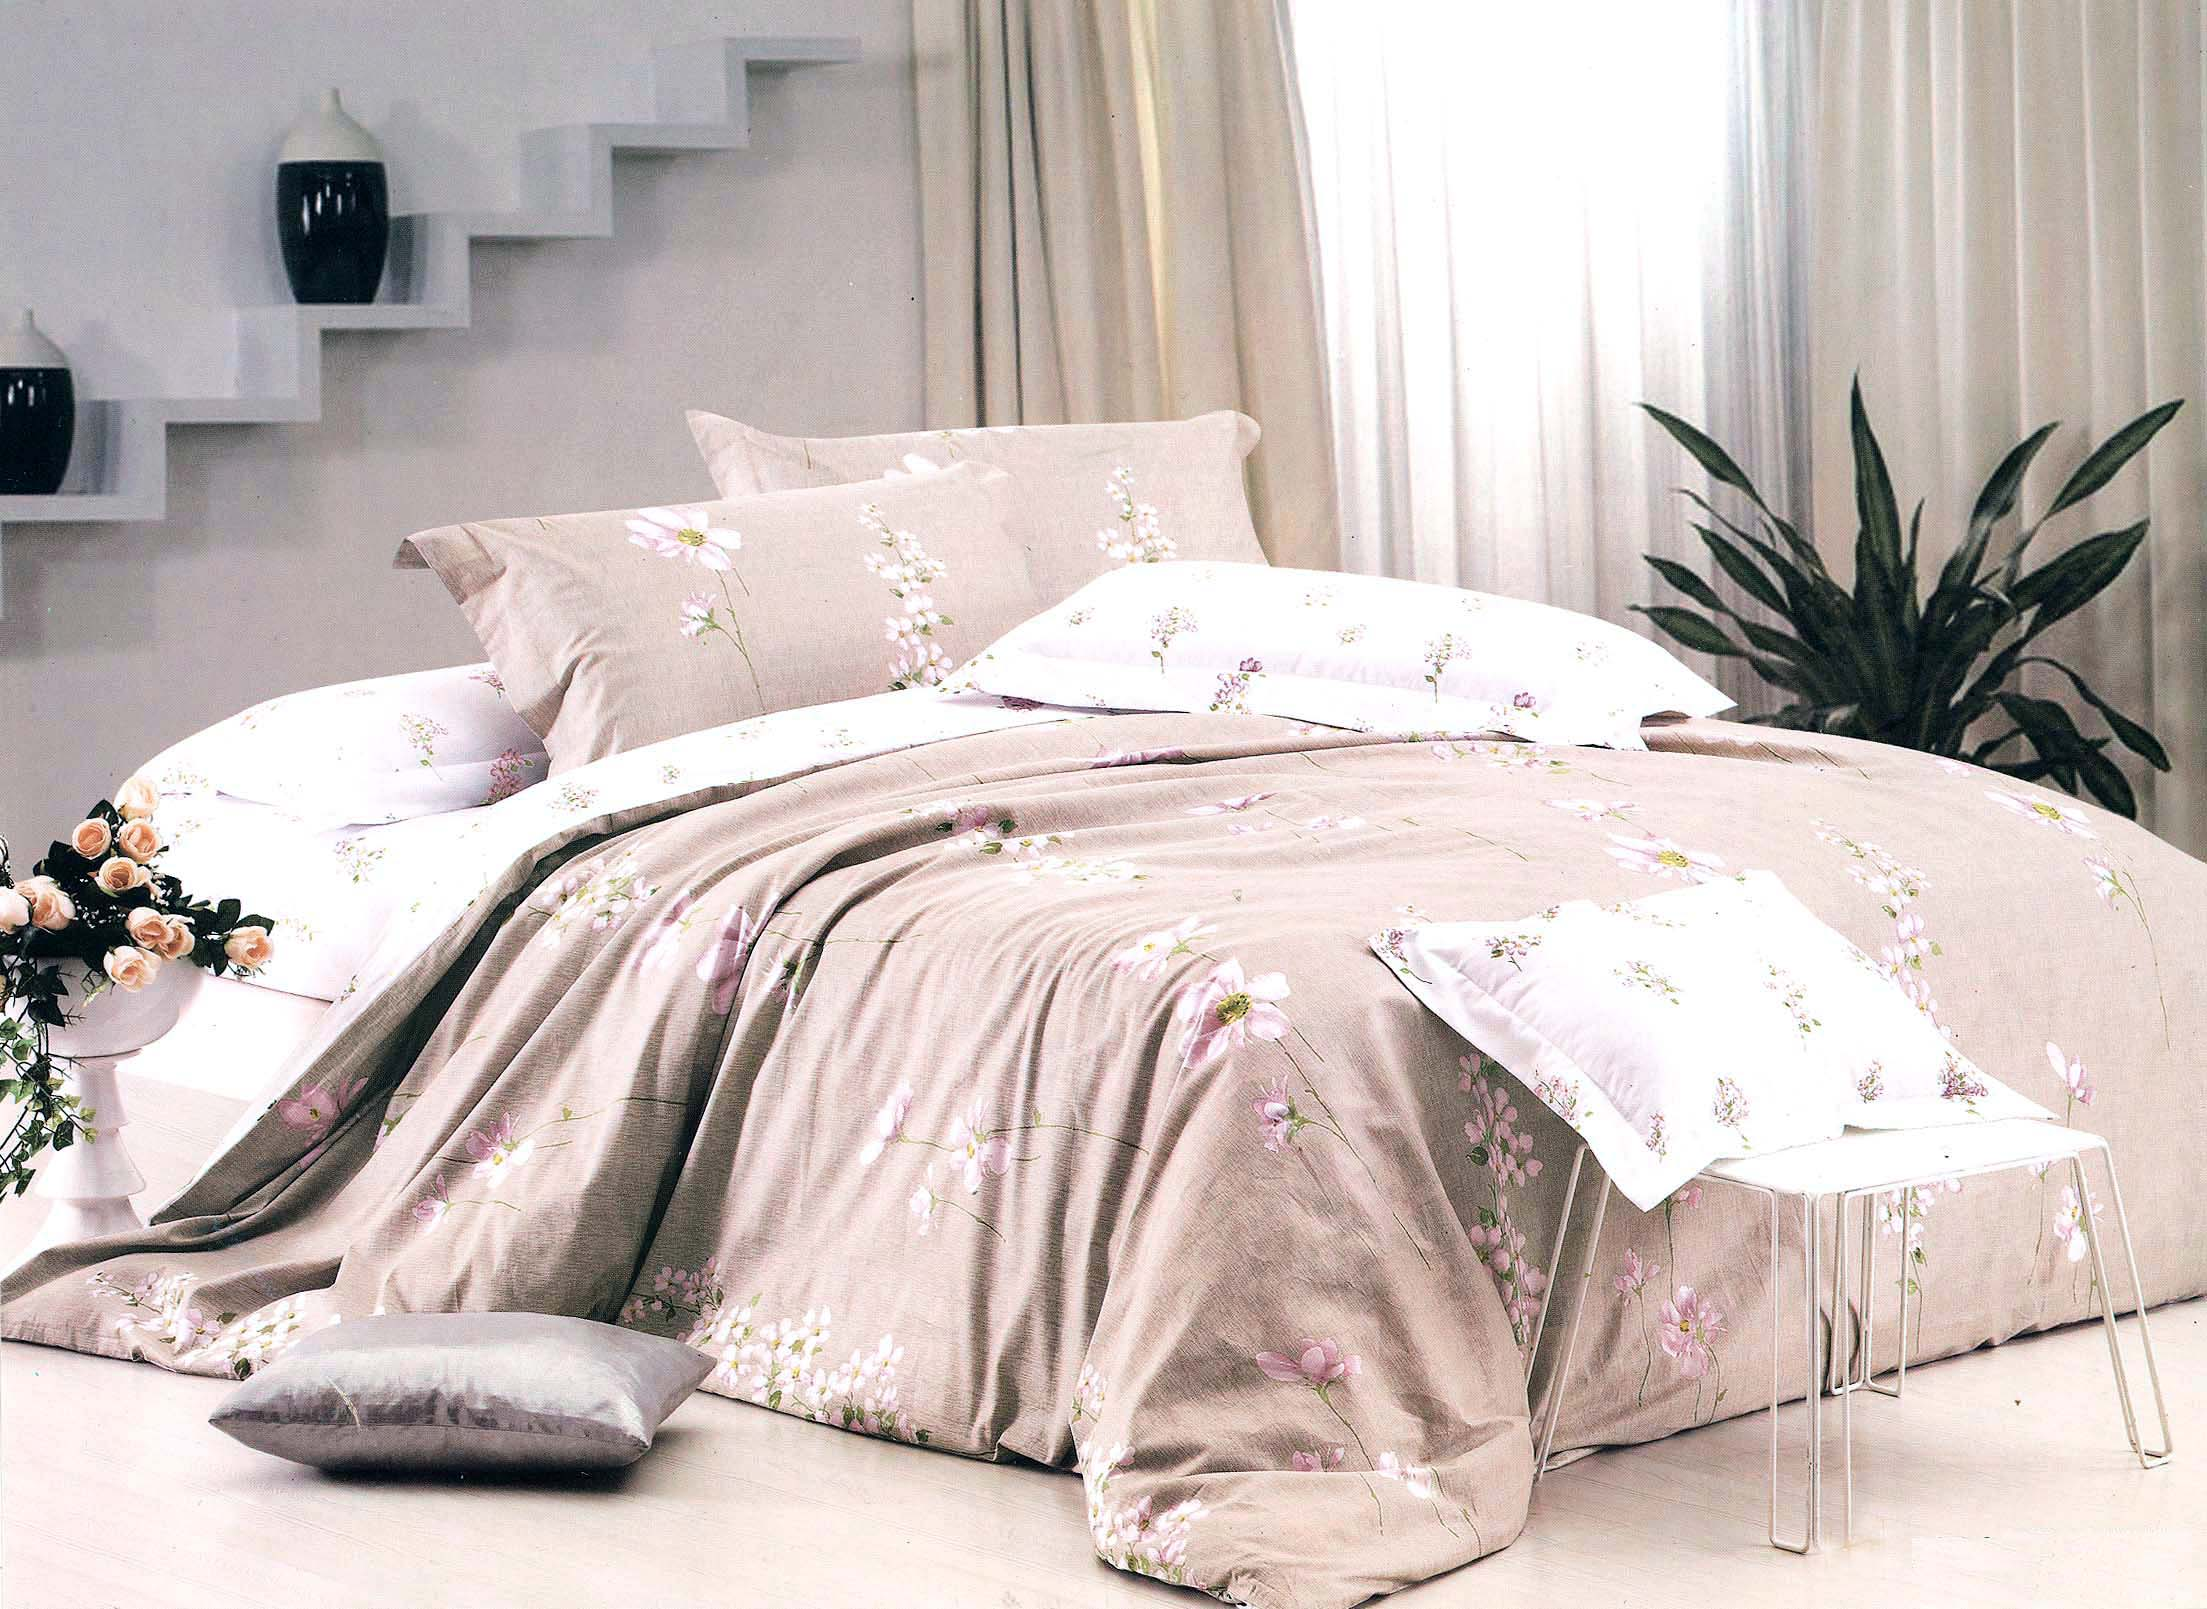 comforter grey printed luxurious for most of summer set materials image